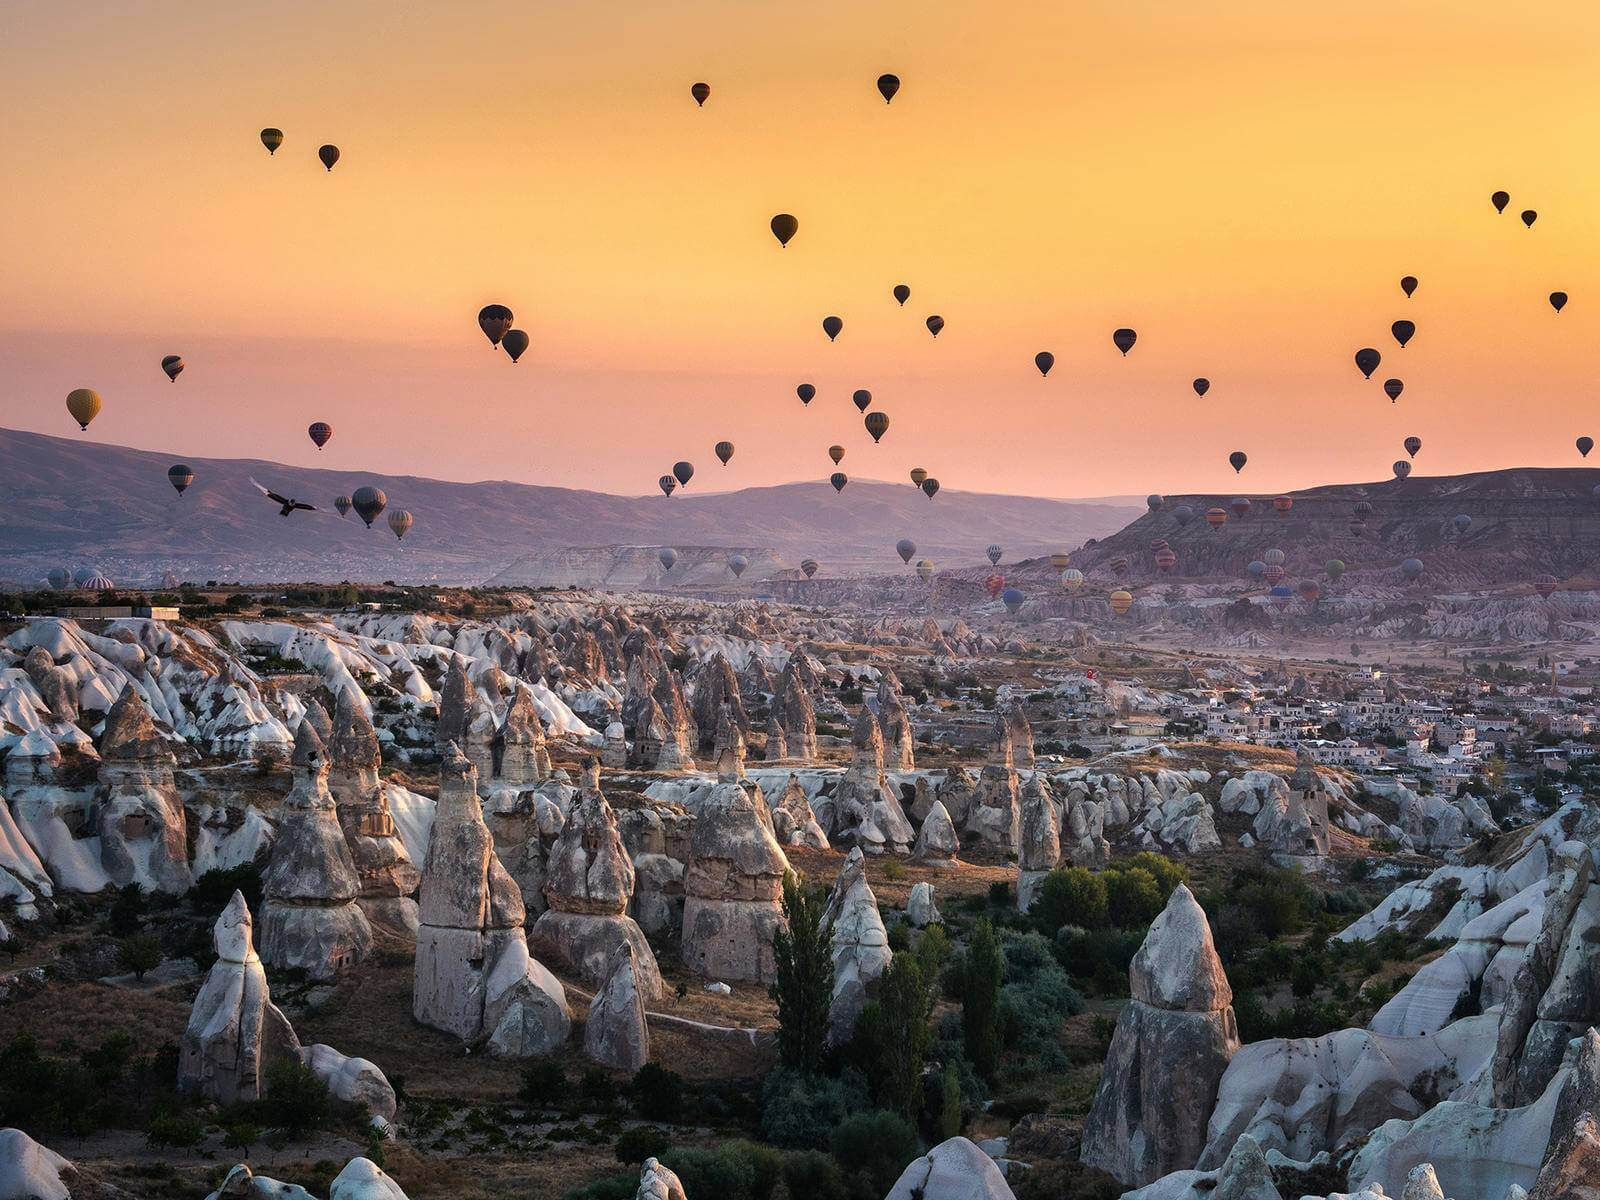 hot air balloons, rock formations, sunset